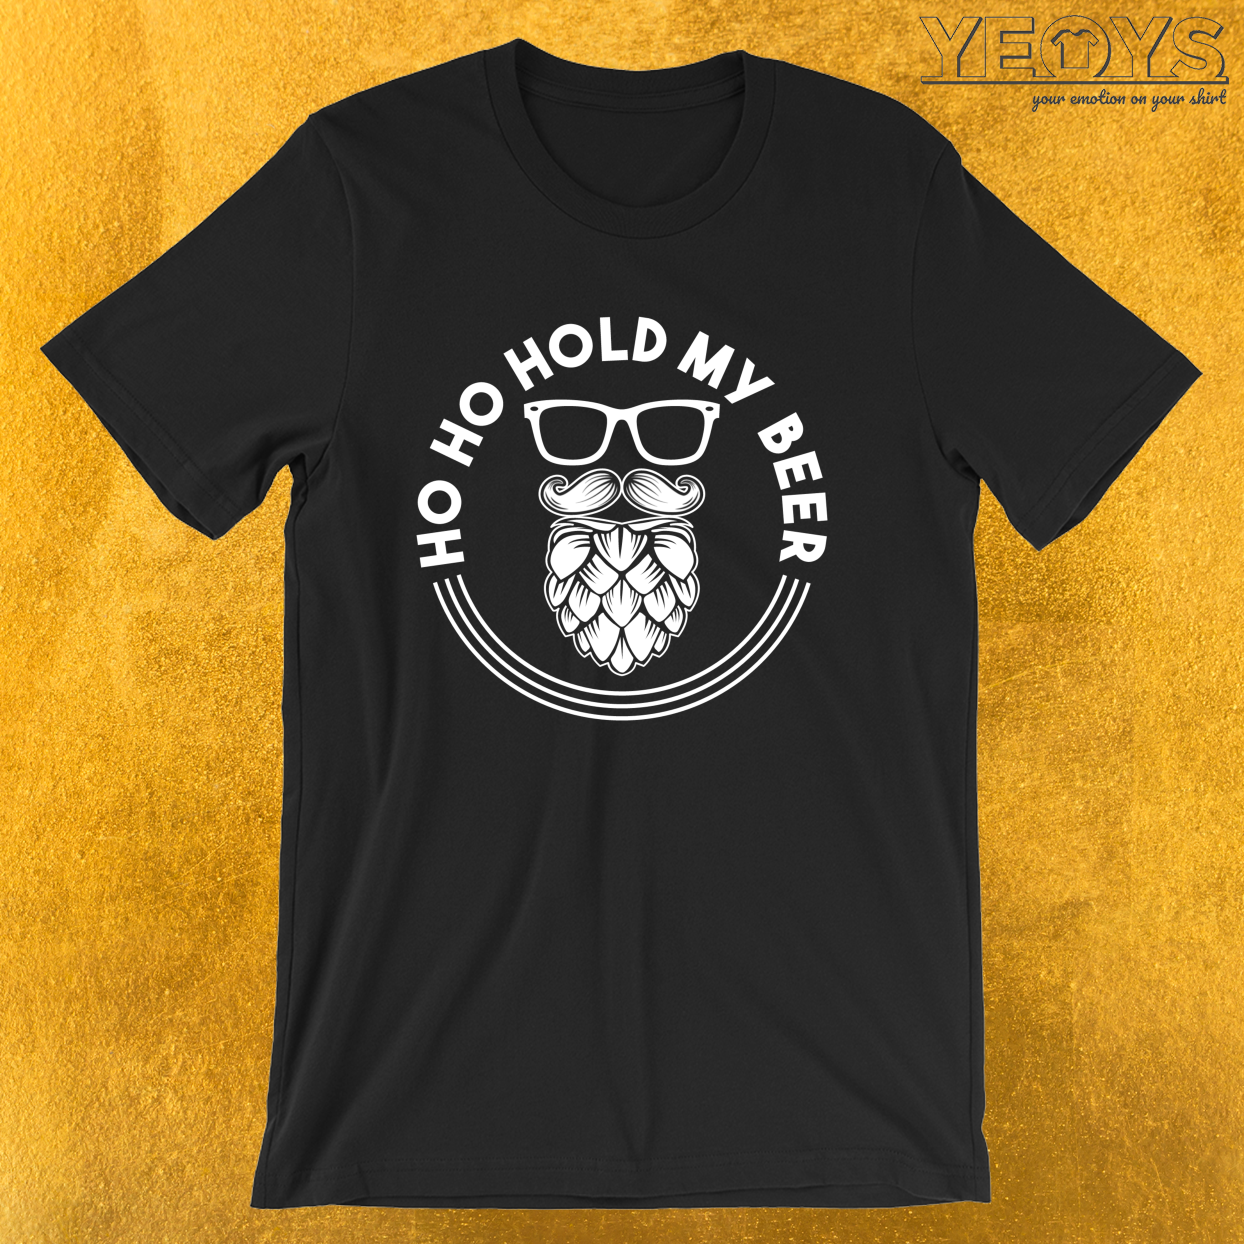 Ho Ho Hold My Beer – Santa Beer Tee